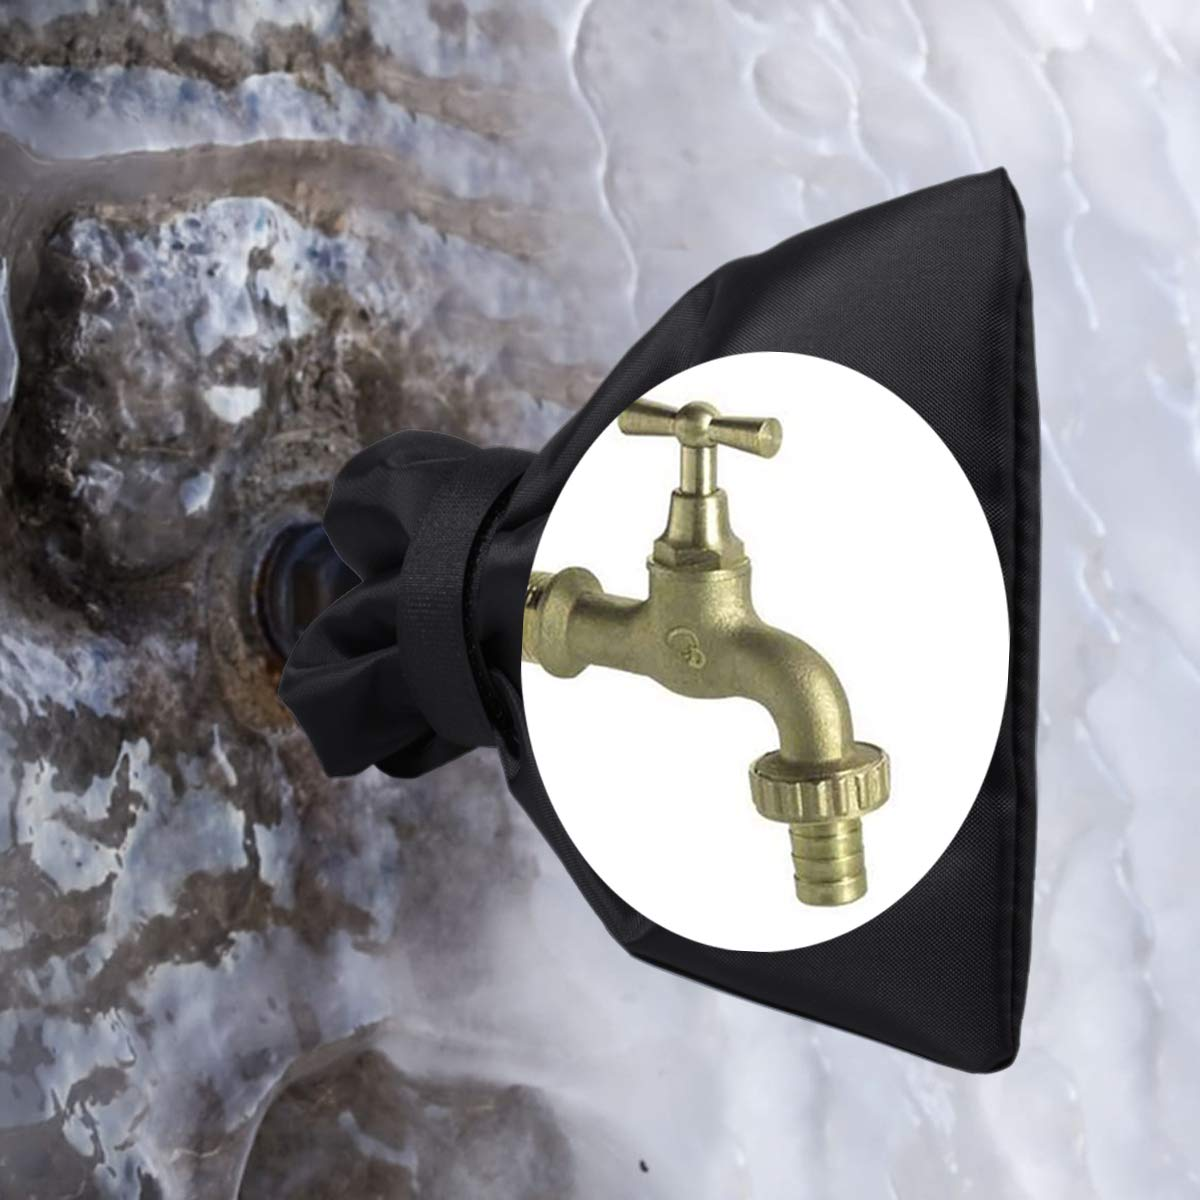 black 2pcs Outdoor Garden Tap Protector From Frost Protect Your Outside Garden Tap From Freezing CT Outside Tap Covers For the Winter